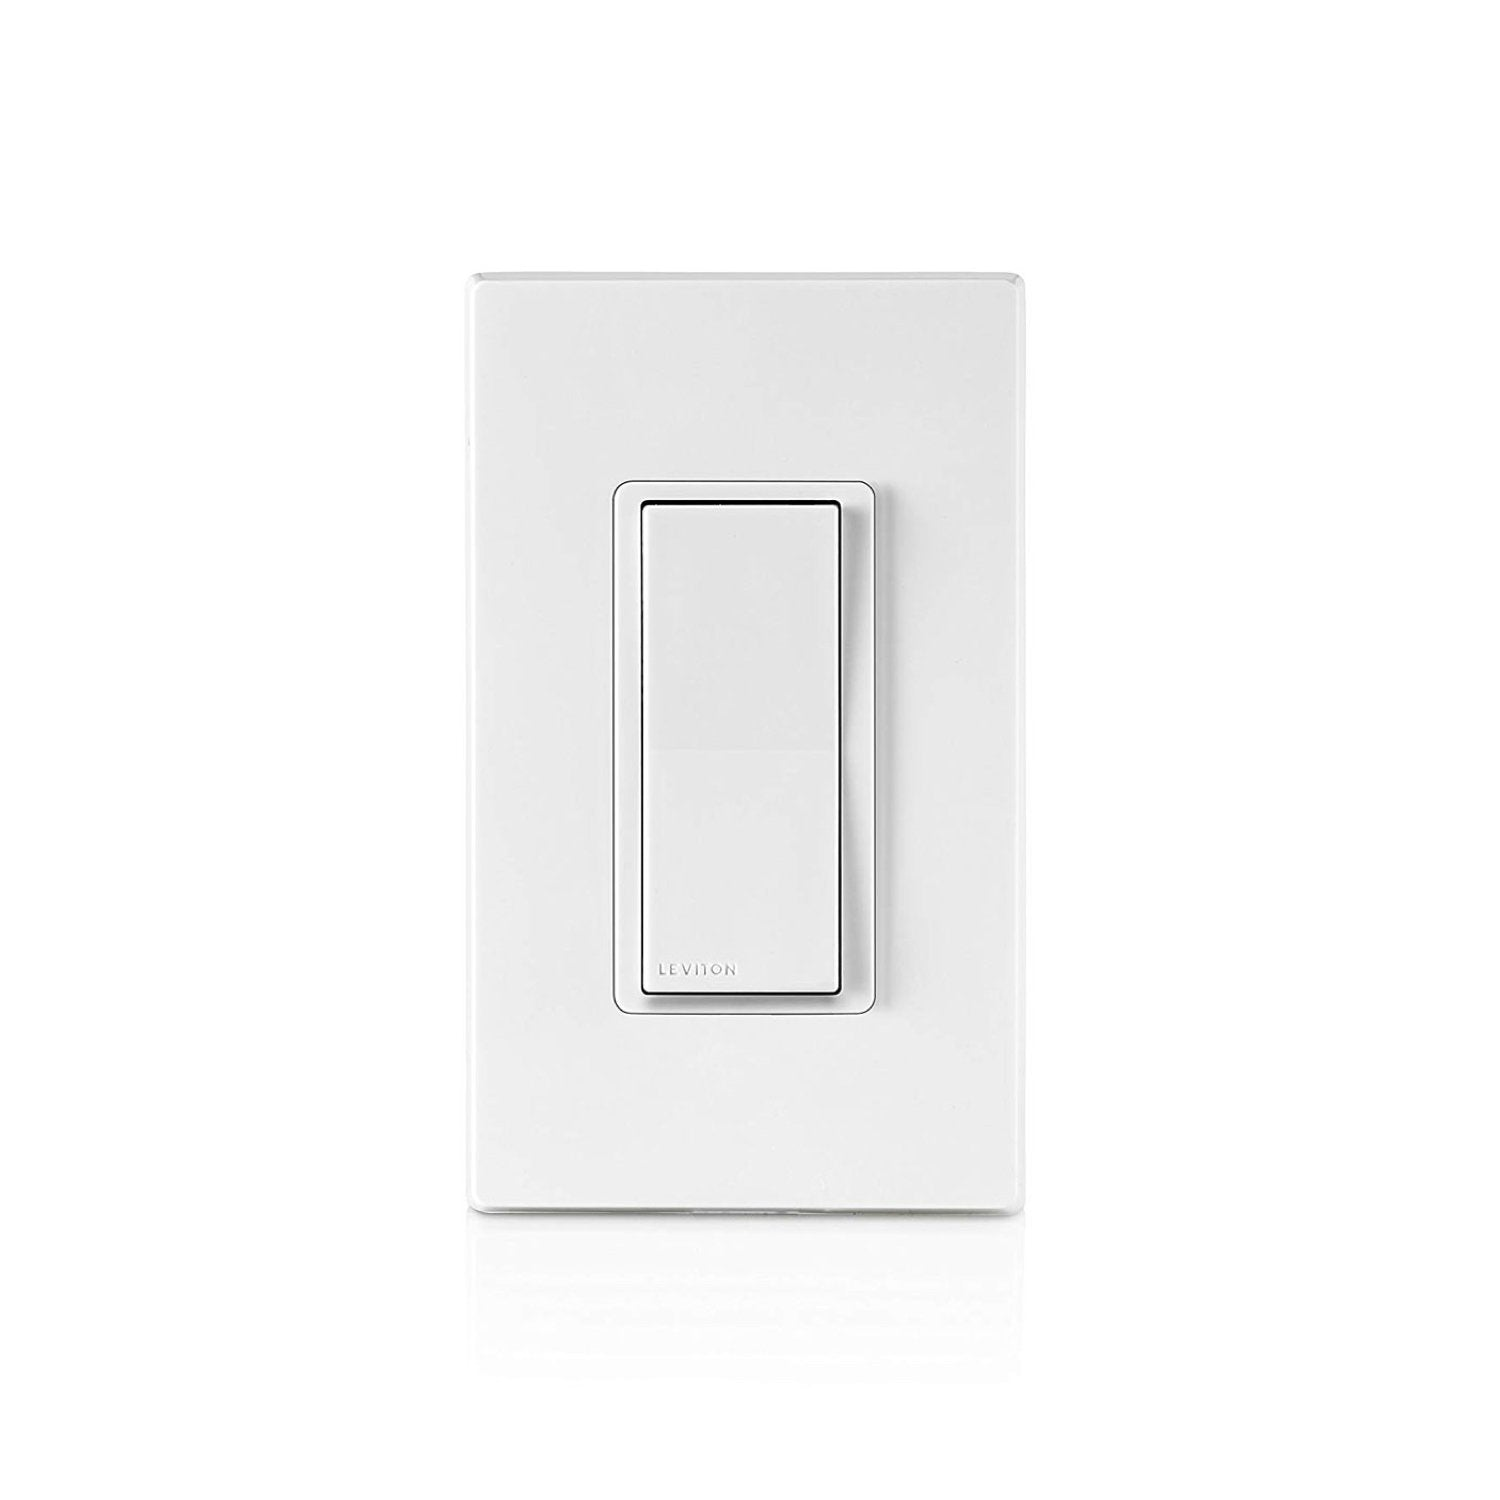 Leviton Decora Smart In-Wall Switch | Smart Home Accessories | Ring